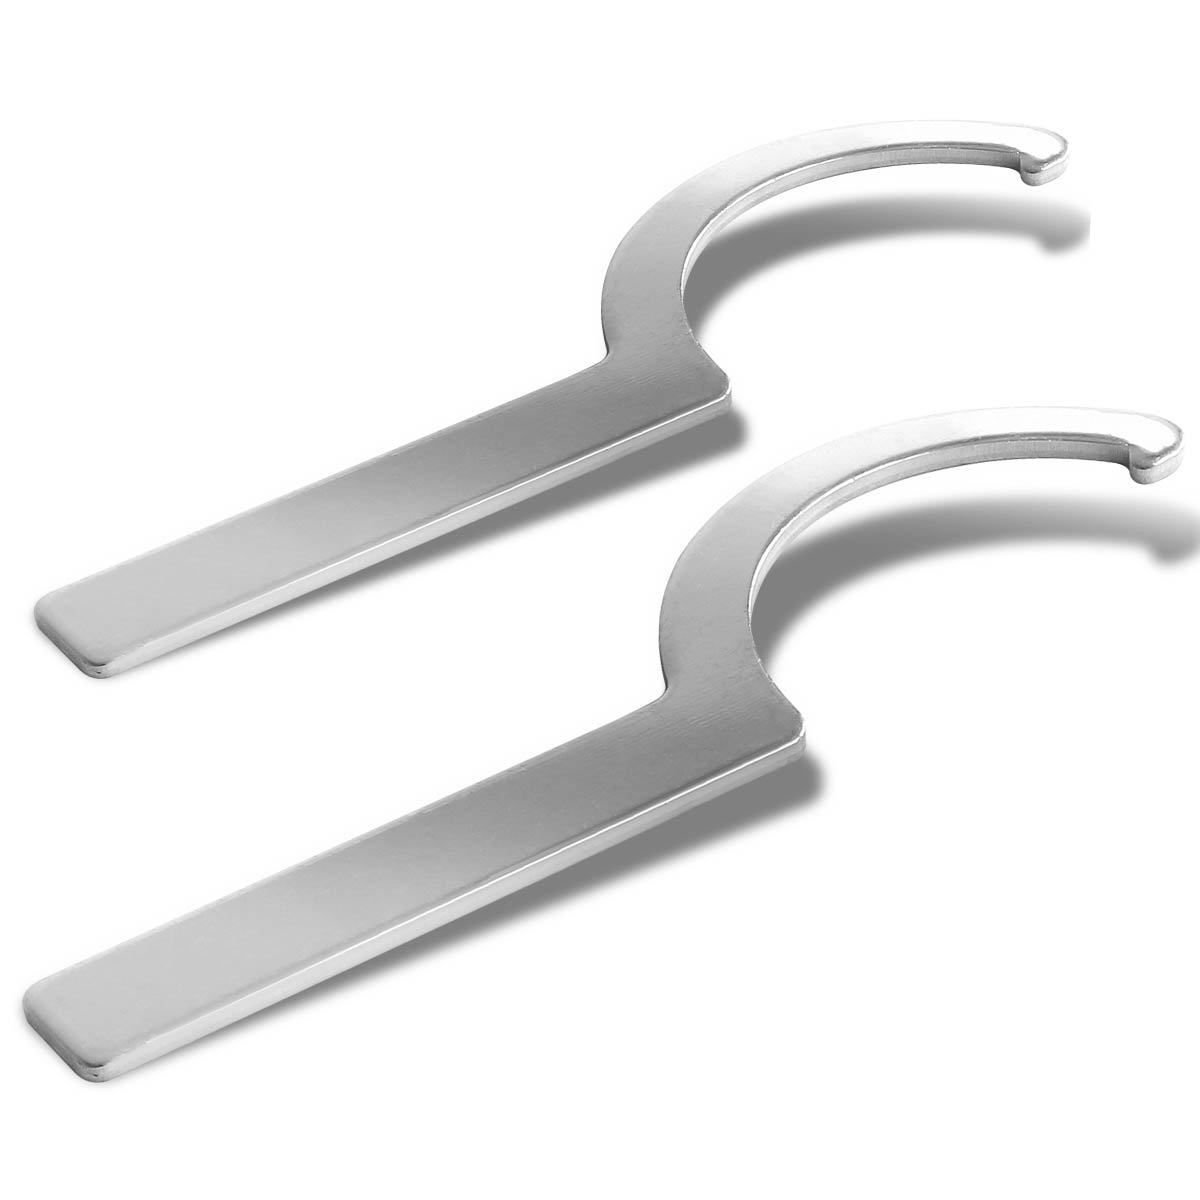 Aluminum Coilover Damper Sleeve Spanner Wrench (Pack of 2) Auto Dynasty